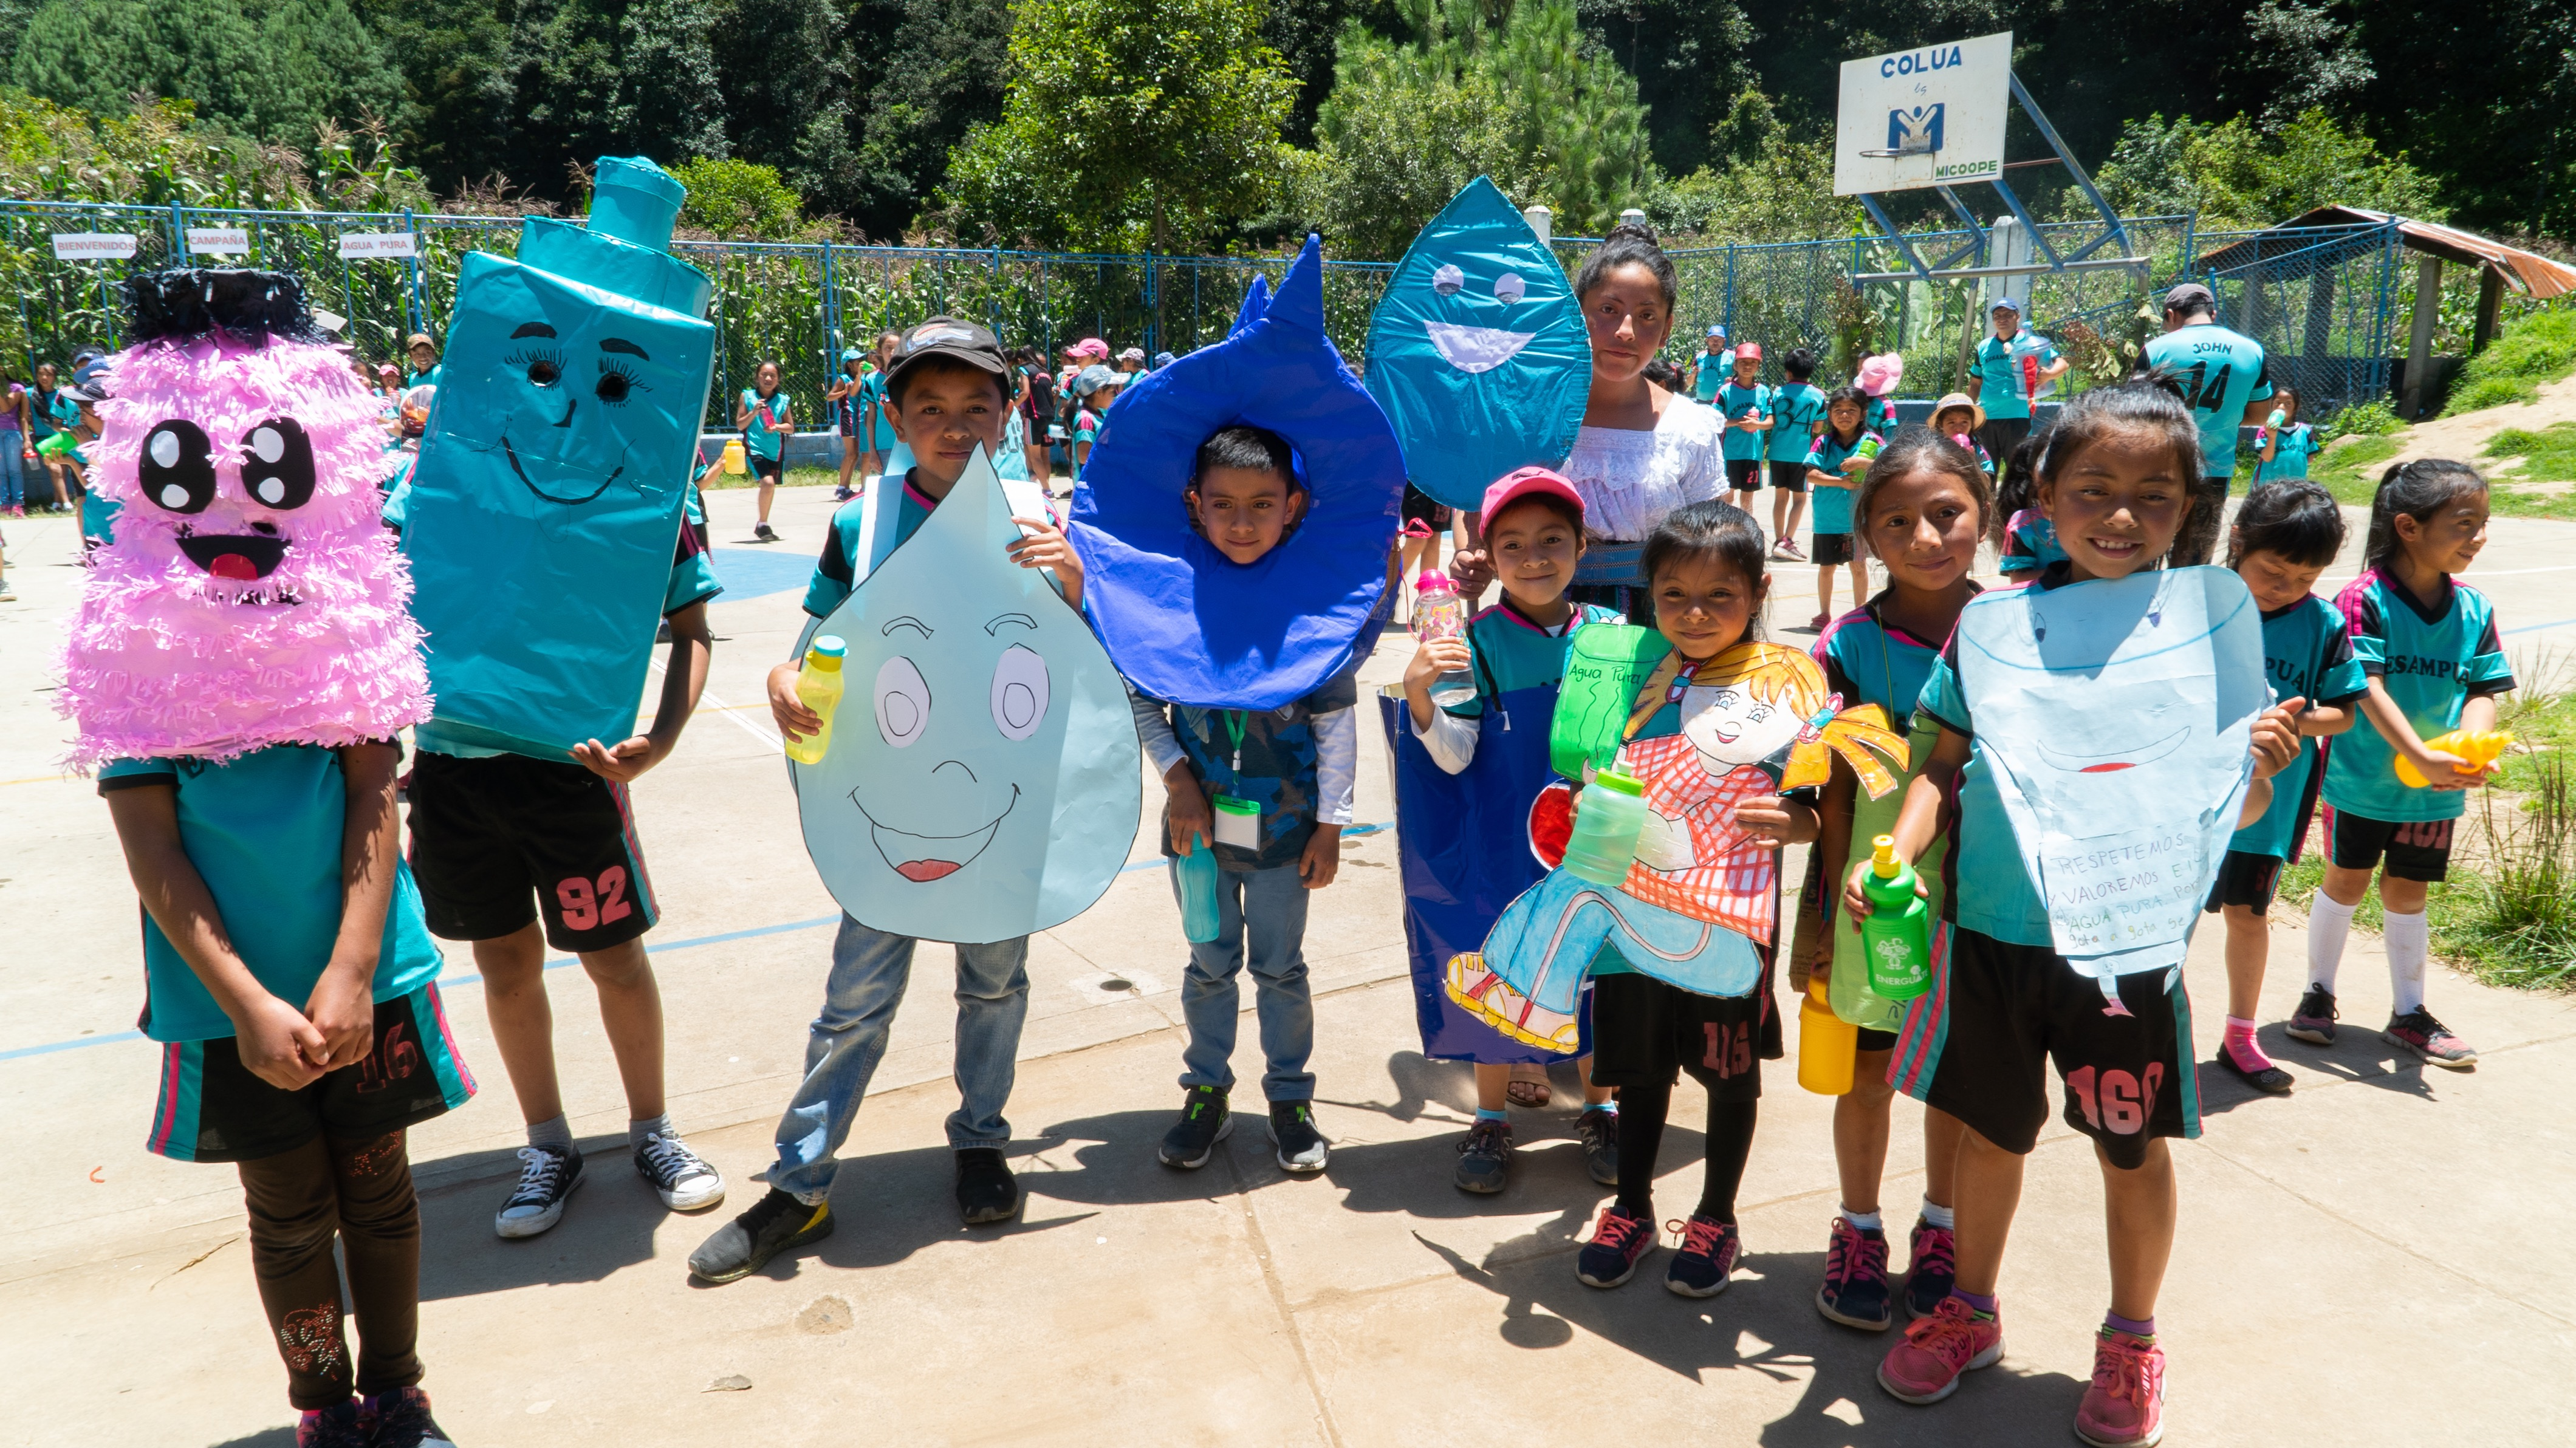 Guatemalan children dressed in water themed costumes